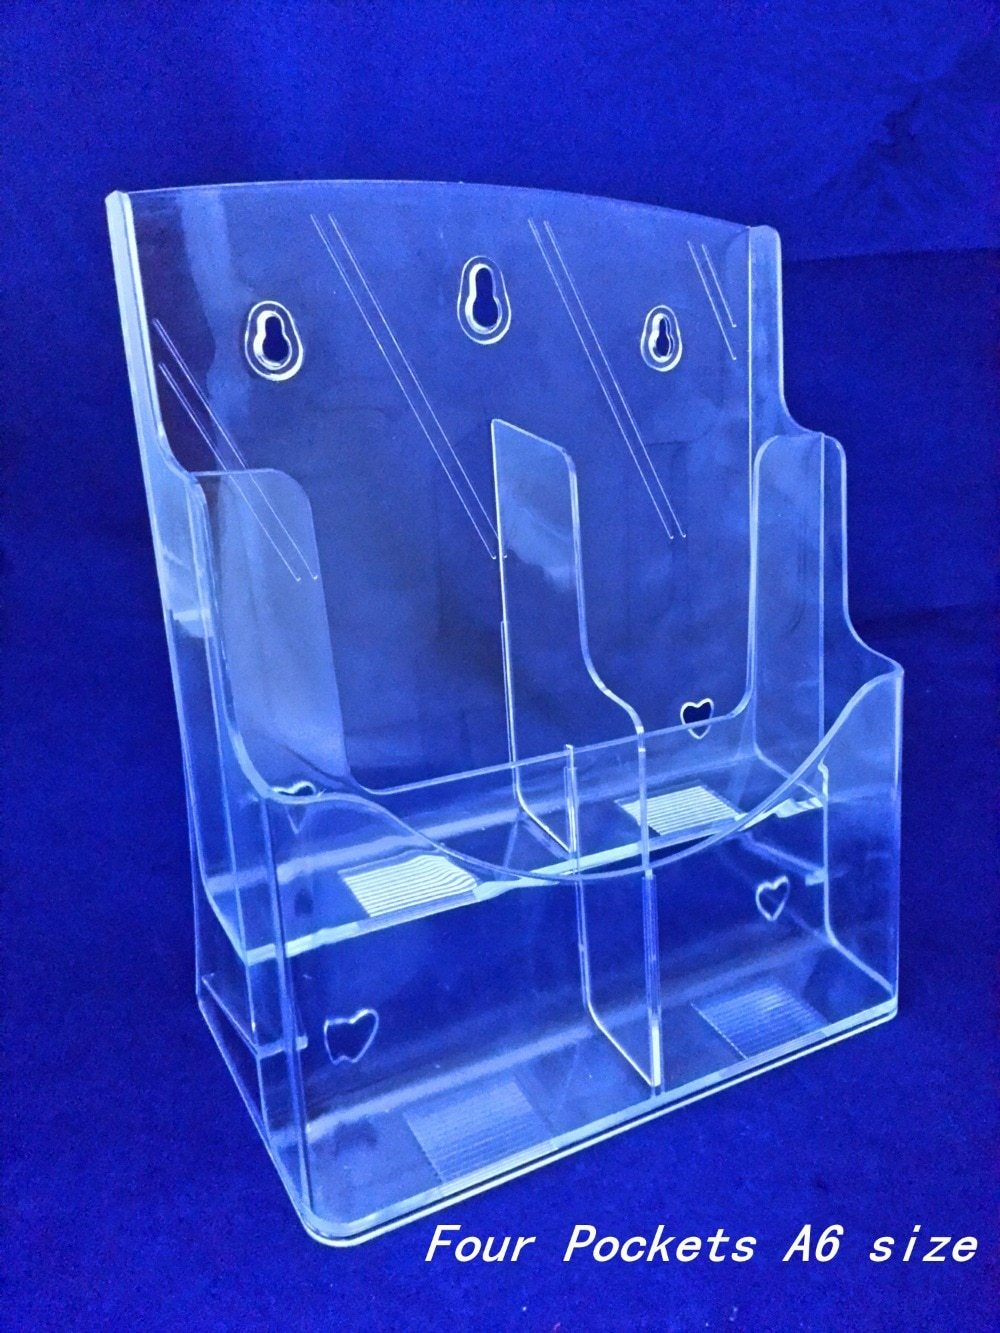 Clear A6 Four Pockets Plastic Acrylic Brochure Literature Pamphlet Display Holder Racks Stand To Insert Leaflet 30pcs